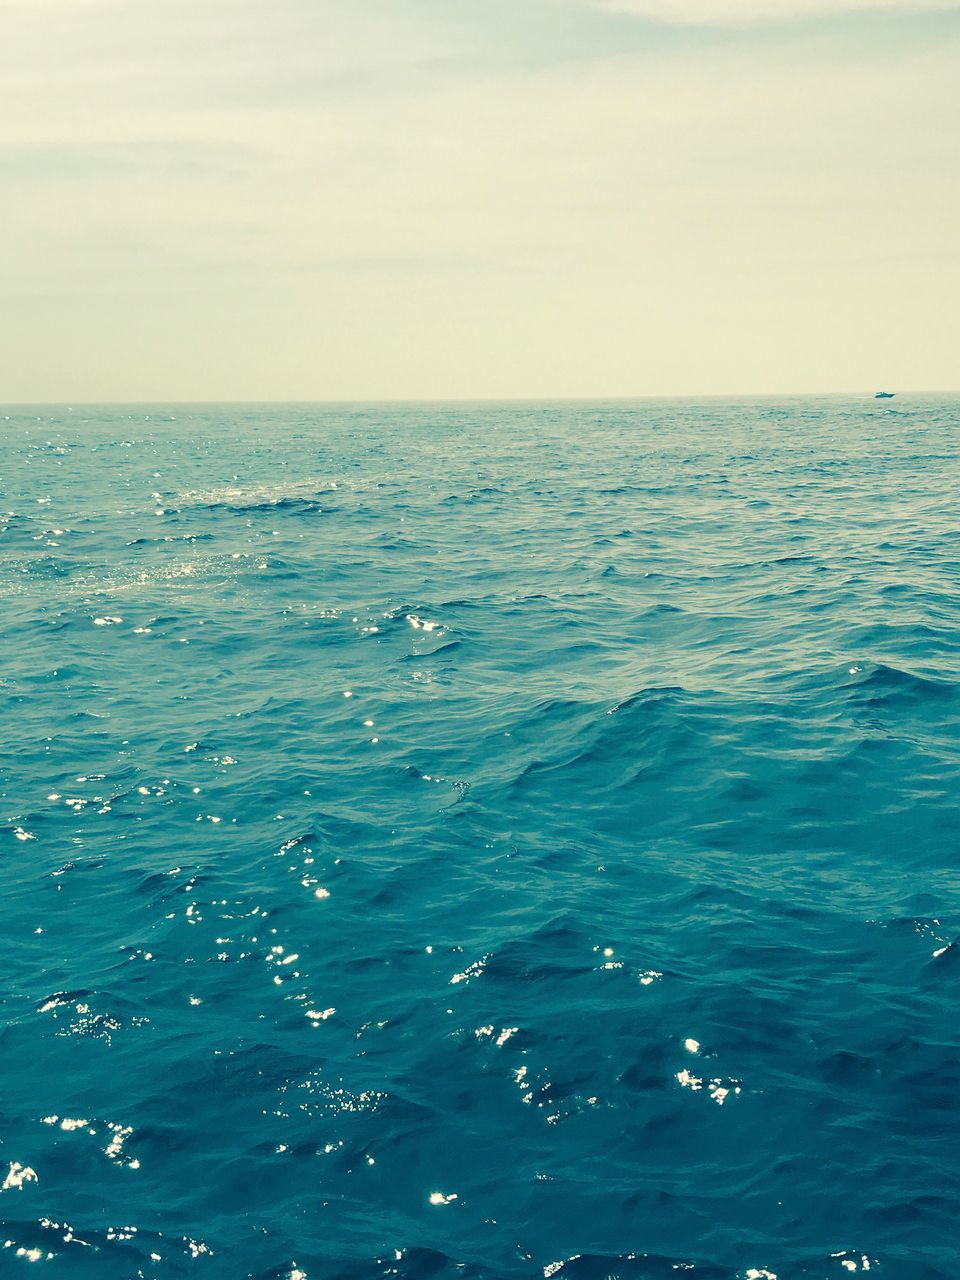 sea, water, horizon over water, nature, beauty in nature, tranquility, scenics, tranquil scene, no people, rippled, sky, outdoors, waterfront, blue, day, clear sky, close-up